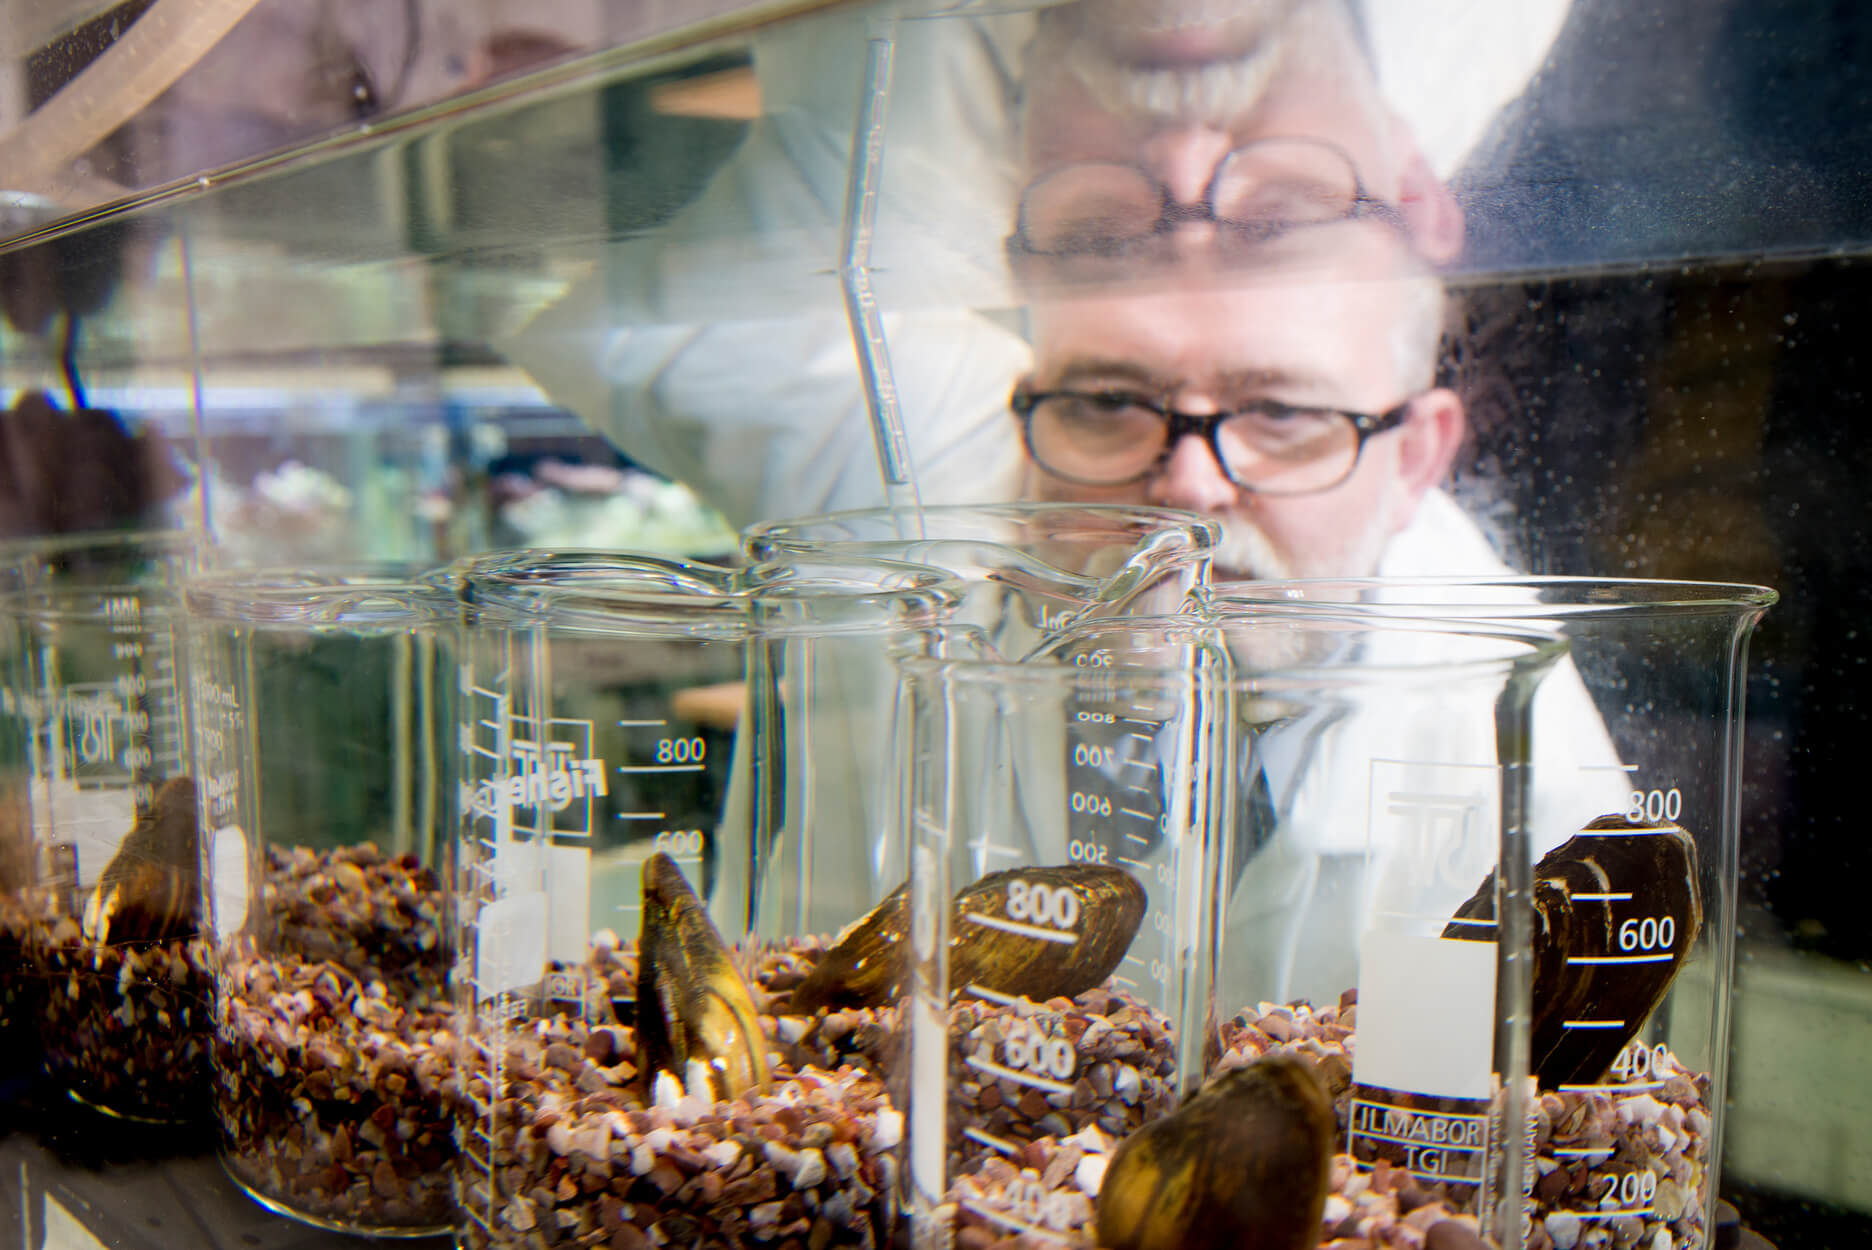 Researcher studying mussels